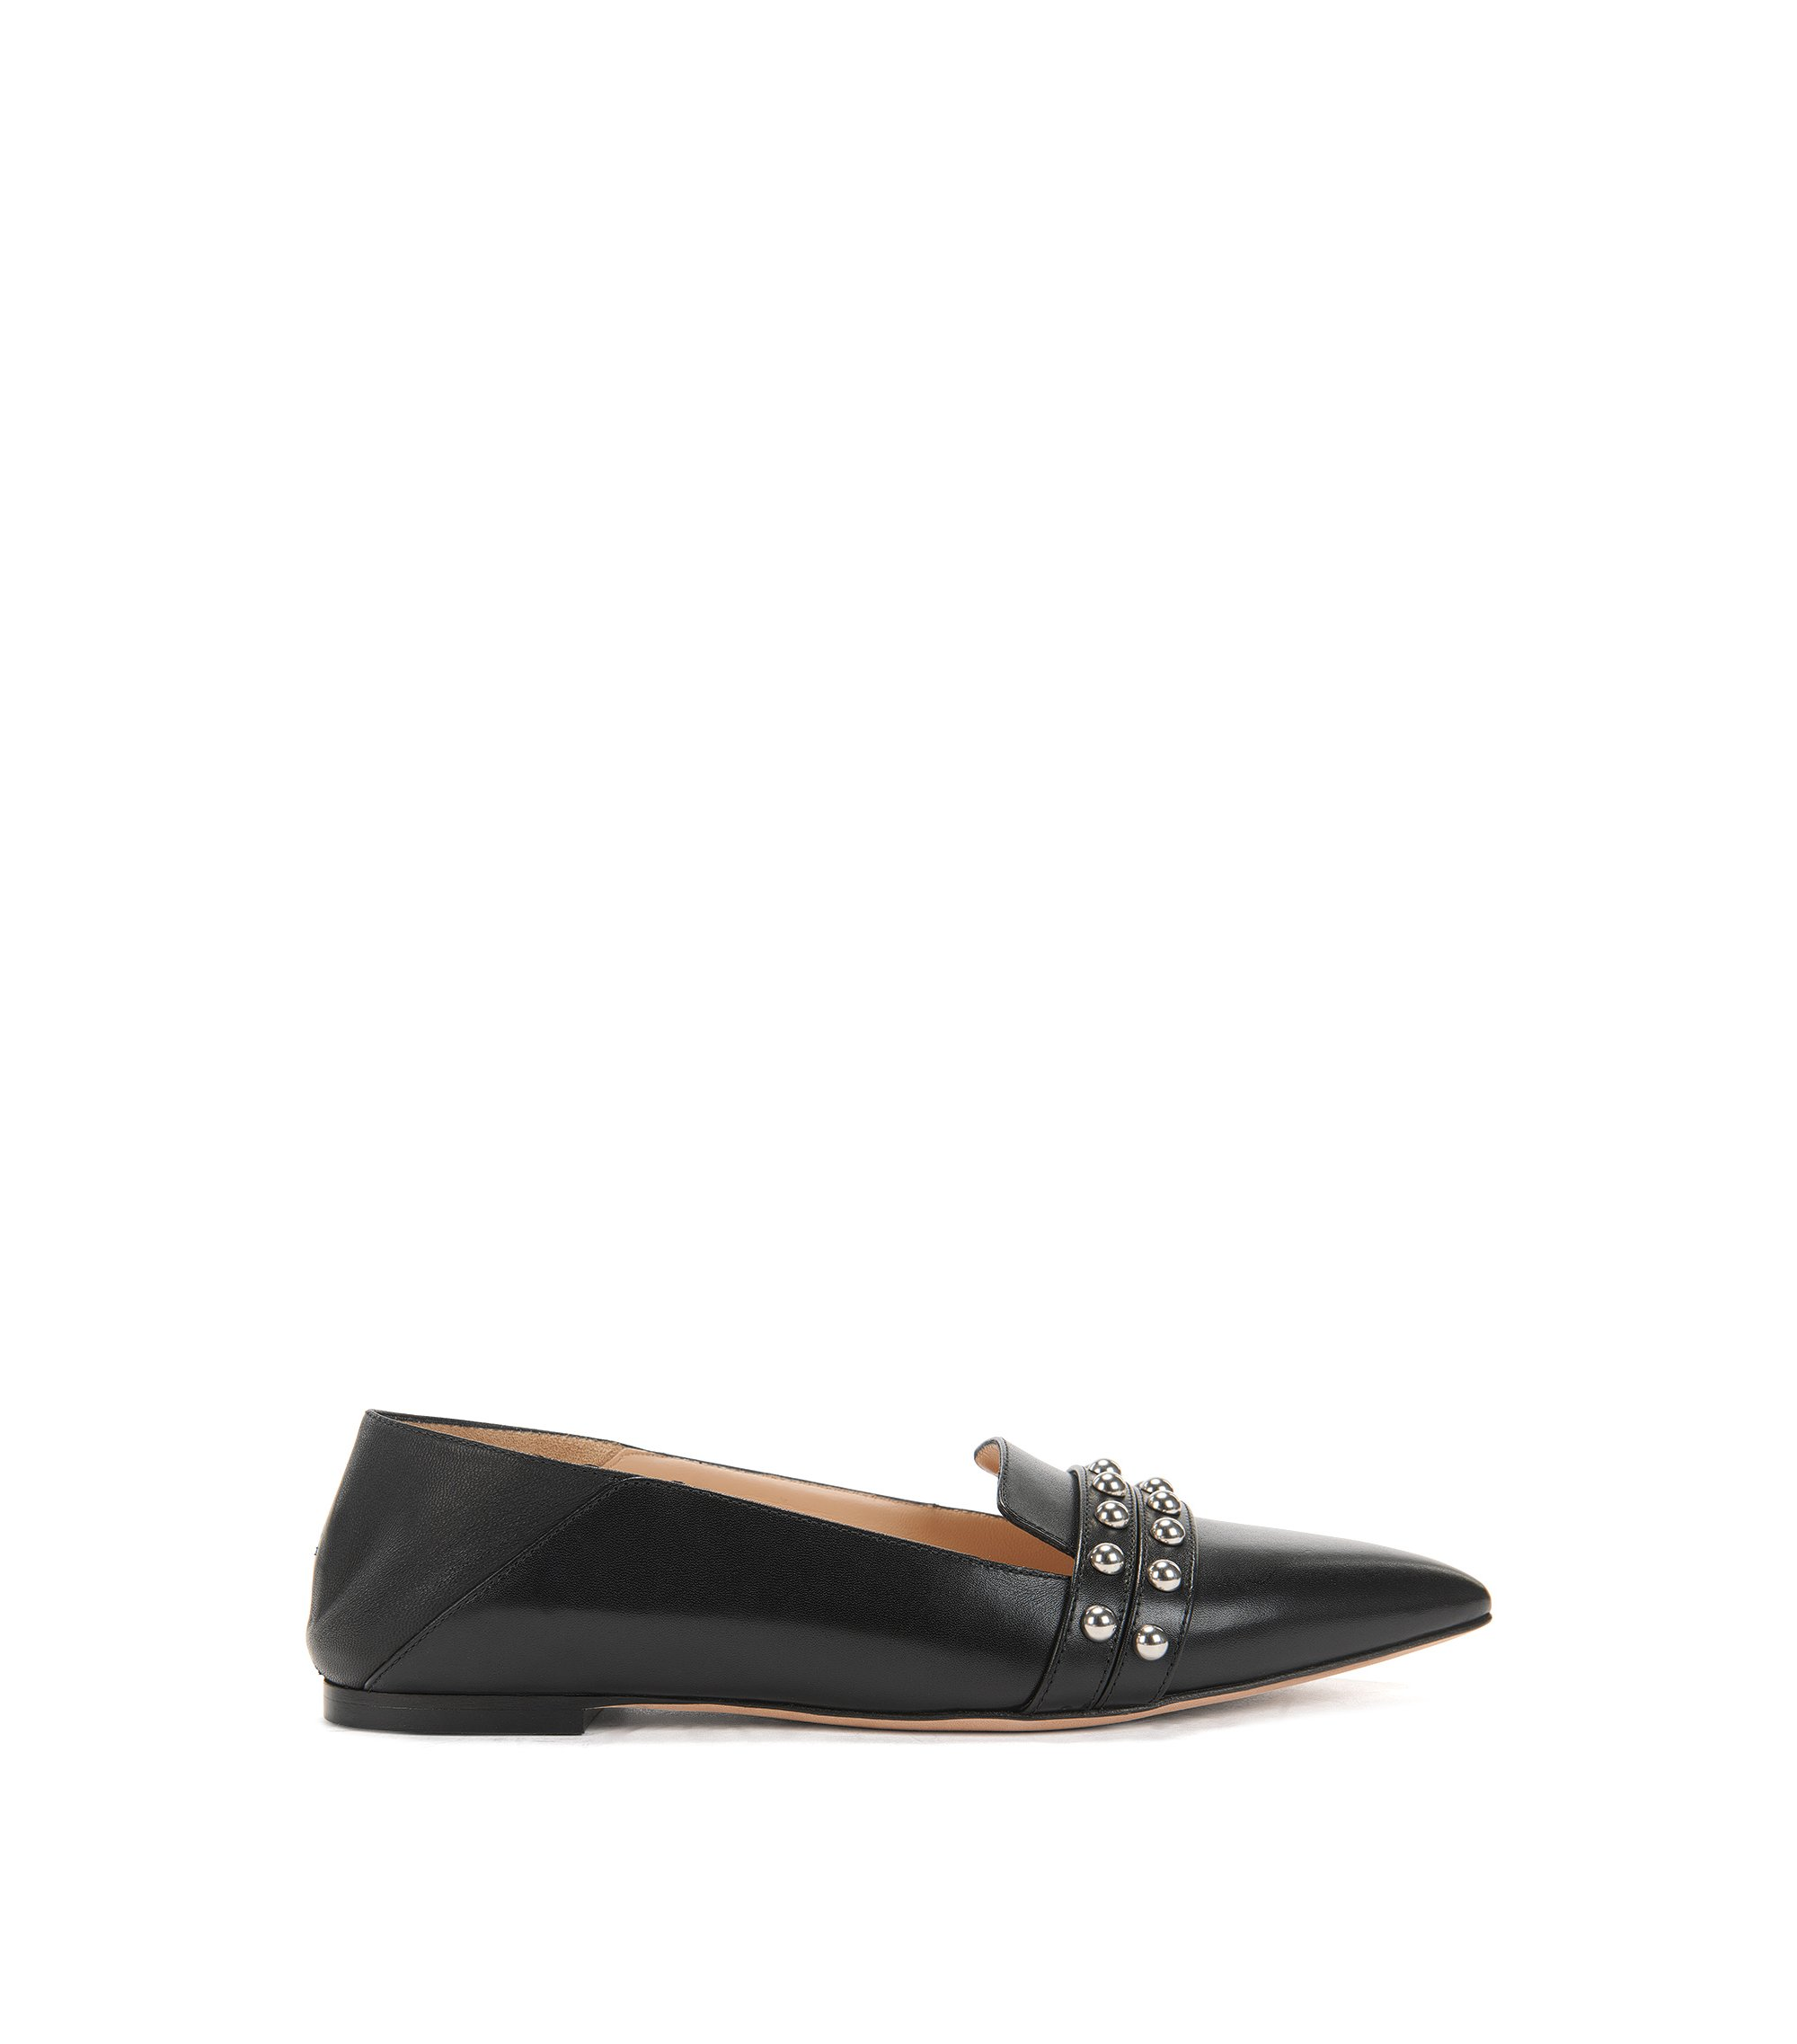 Leather ballerina pumps with stud embellishments, Black